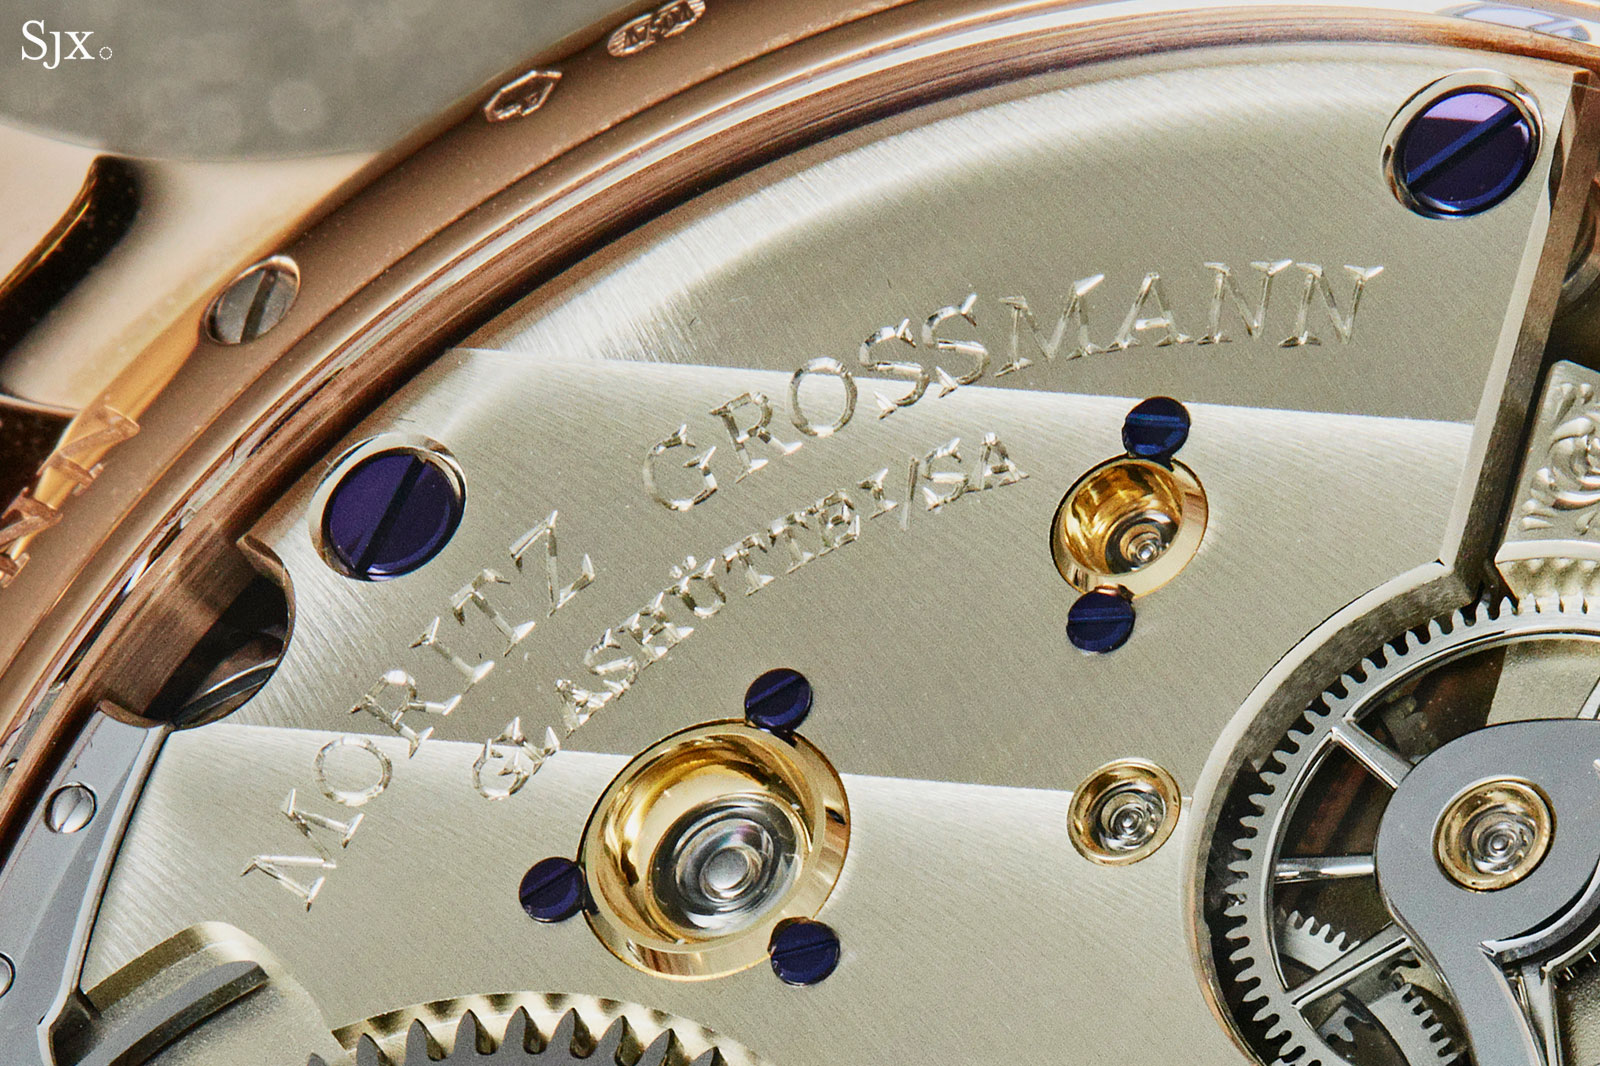 Moritz Grossmann Benu tourbillon movement 2